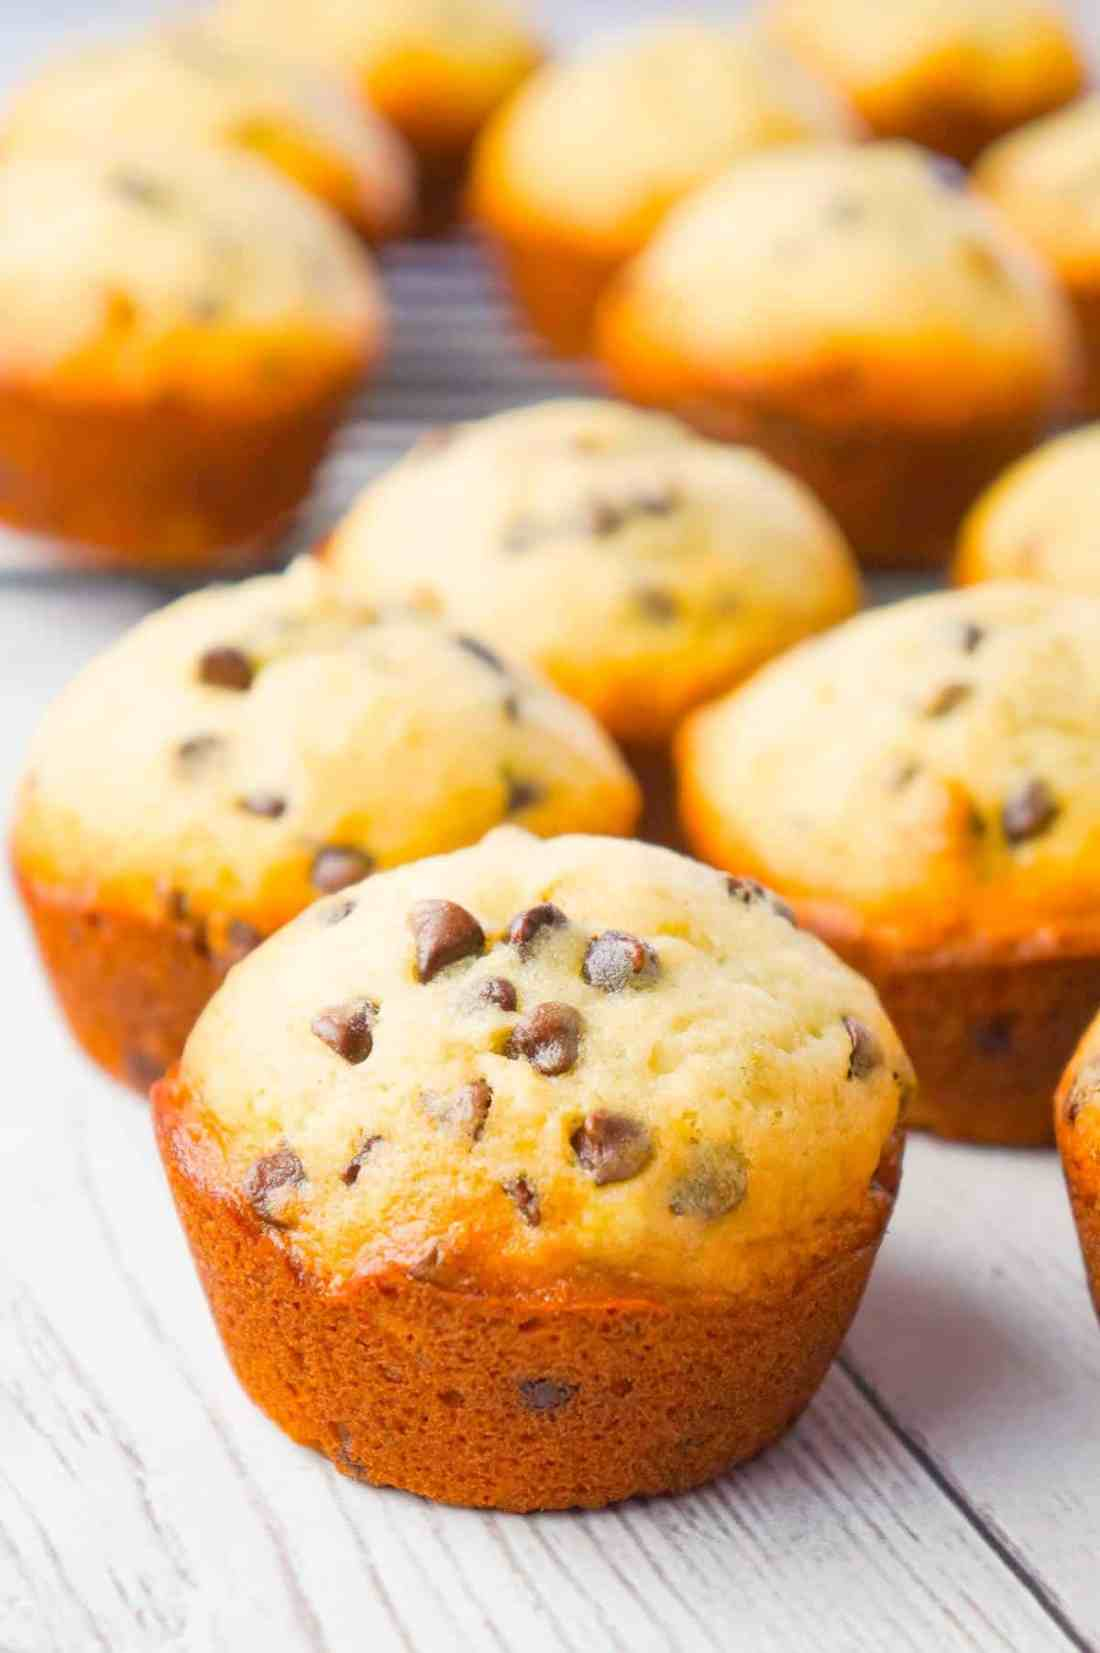 Chocolate Chip Banana Muffins are an easy breakfast or snack recipe made from ripe bananas and loaded with mini semi sweet chocolate chips.